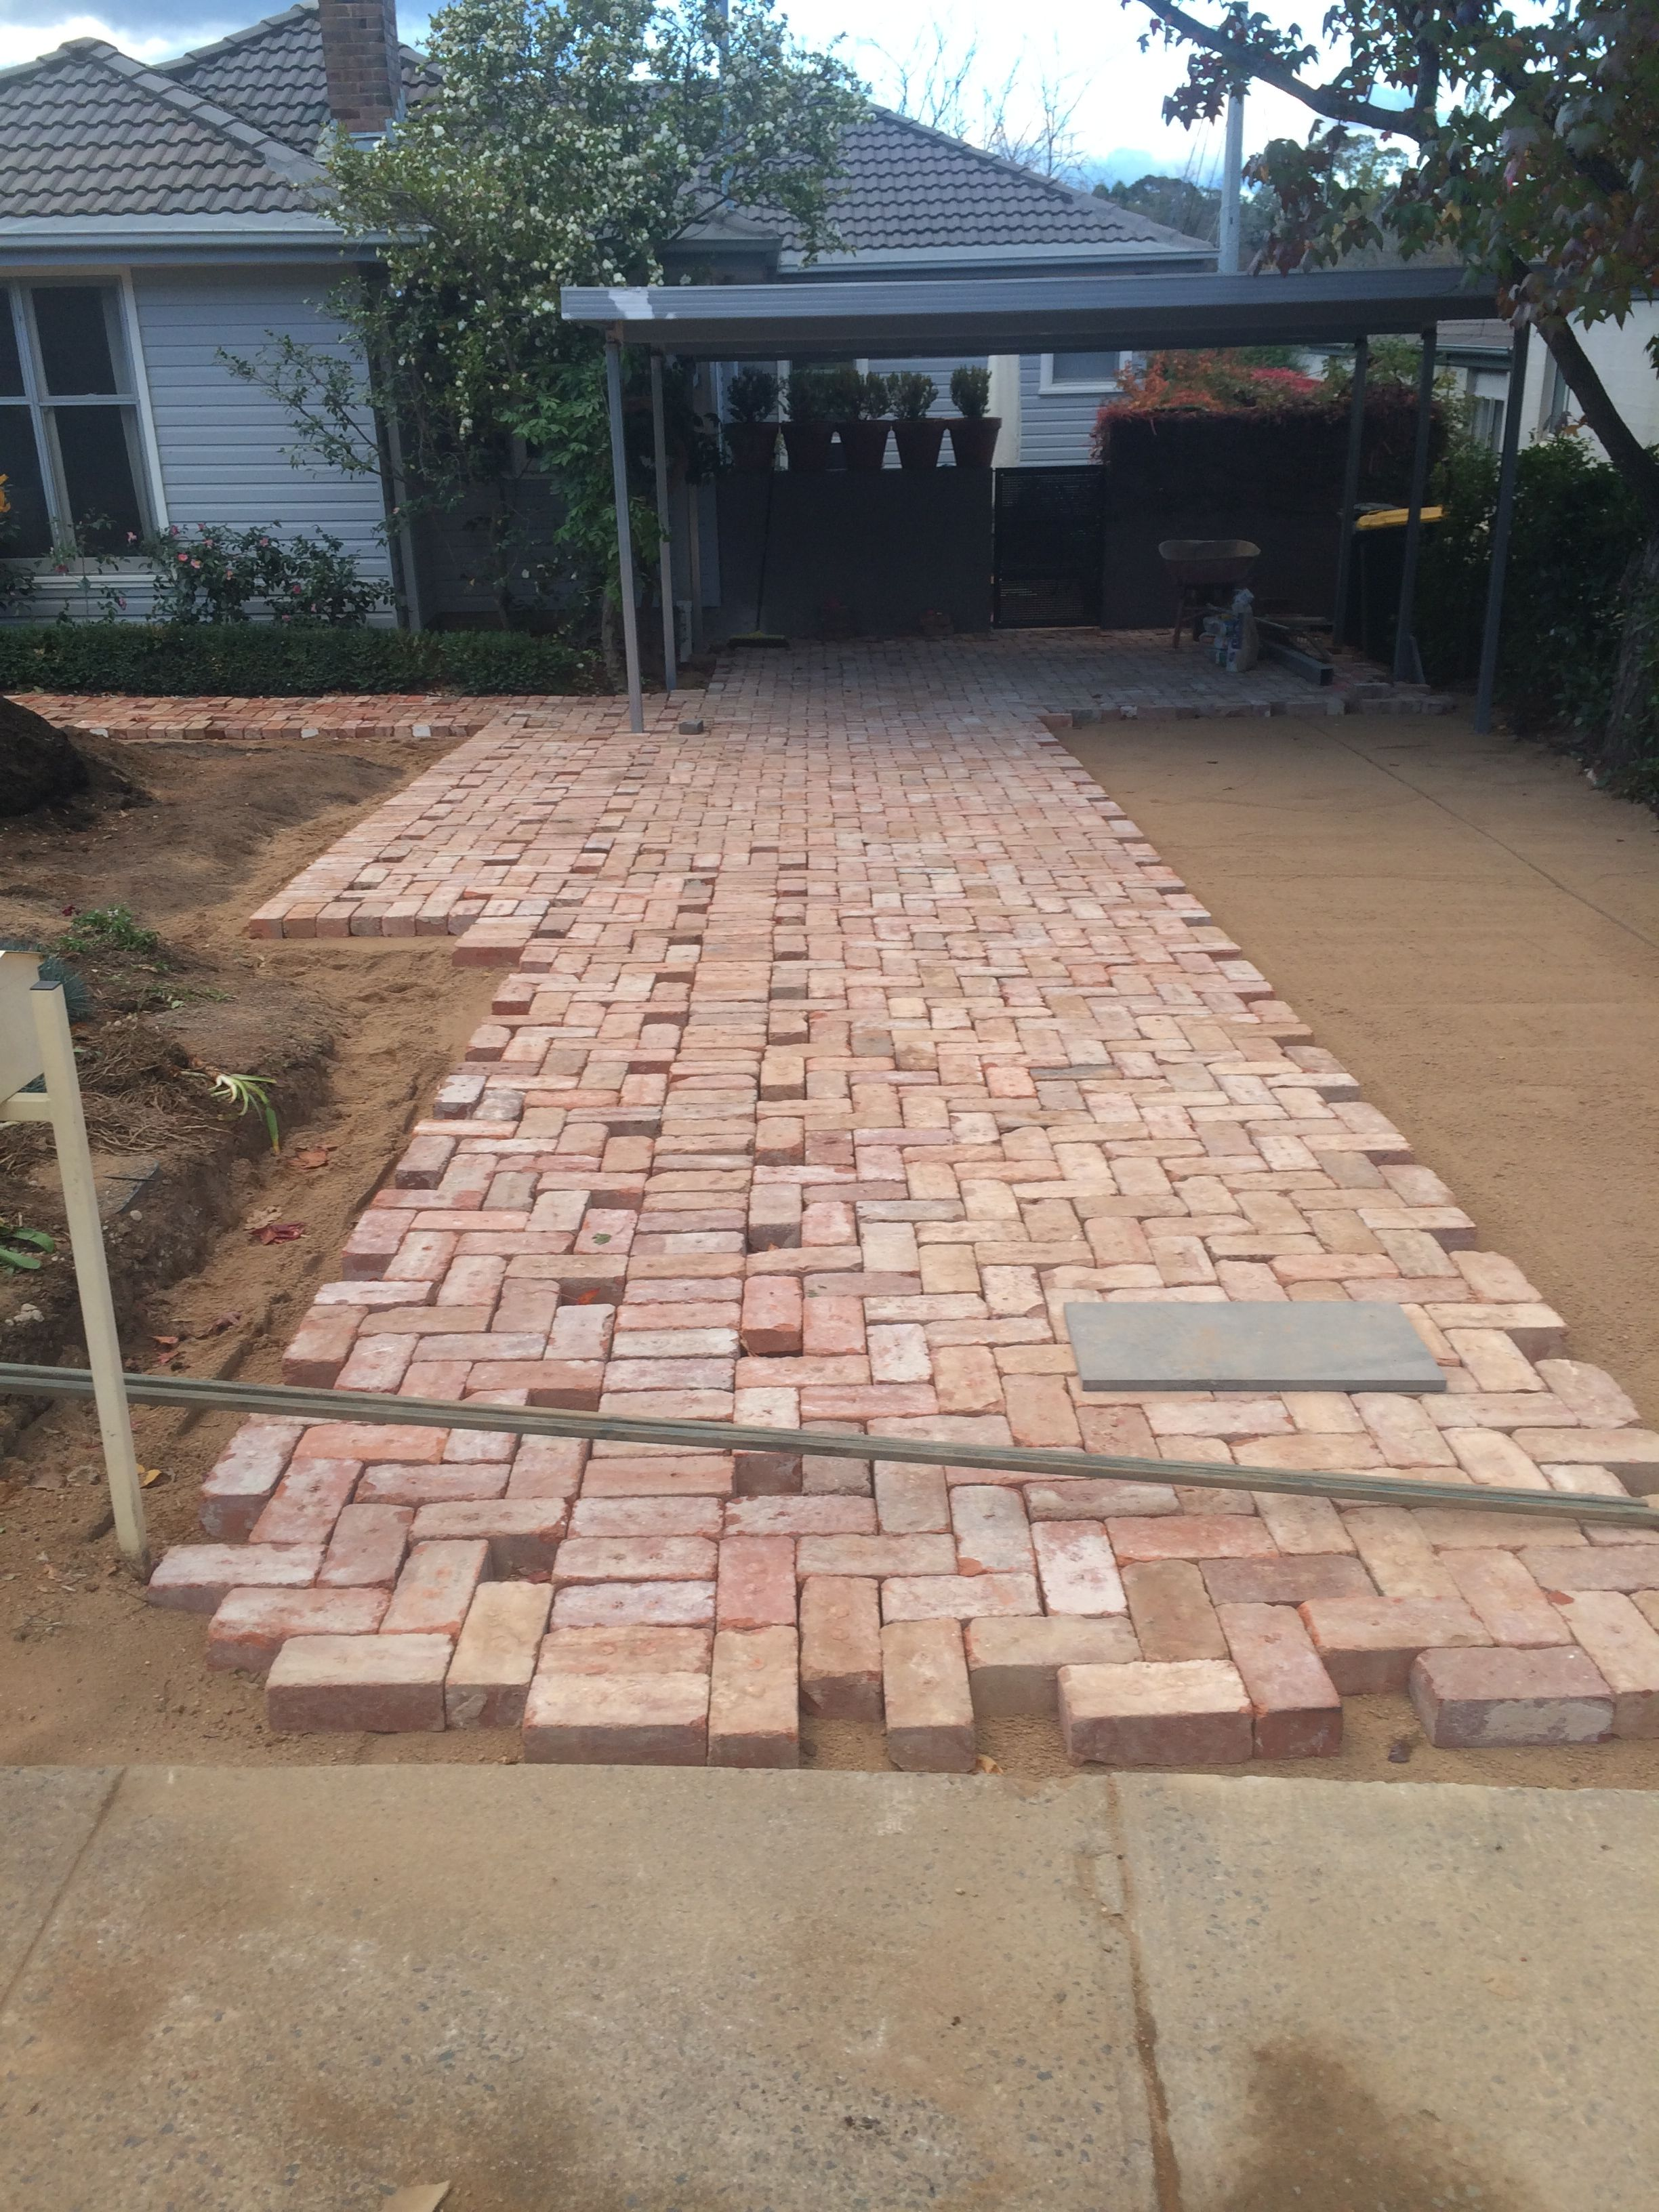 Driveway paving using old canberra red bricks recycled canberra red brick driveway - Reclaimed brick design ideas ...